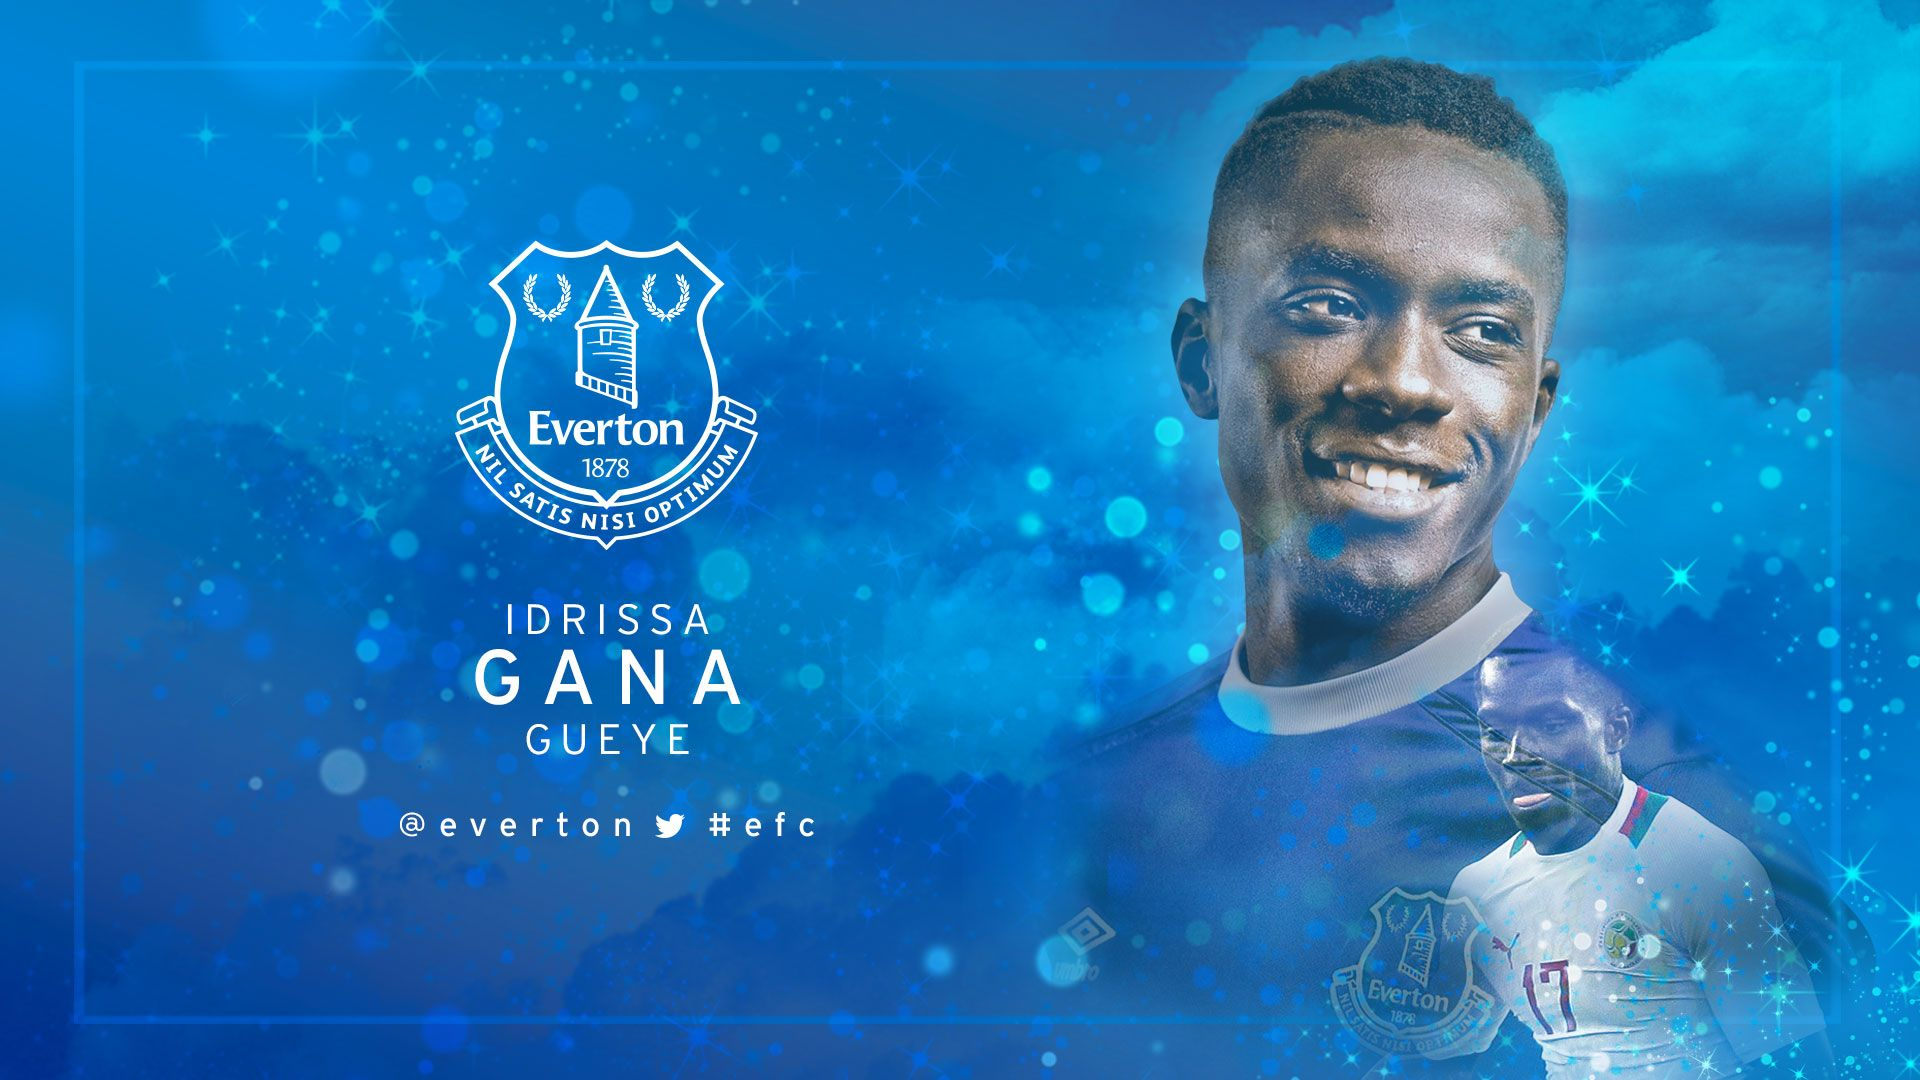 Everton Llpapers Wallpaper